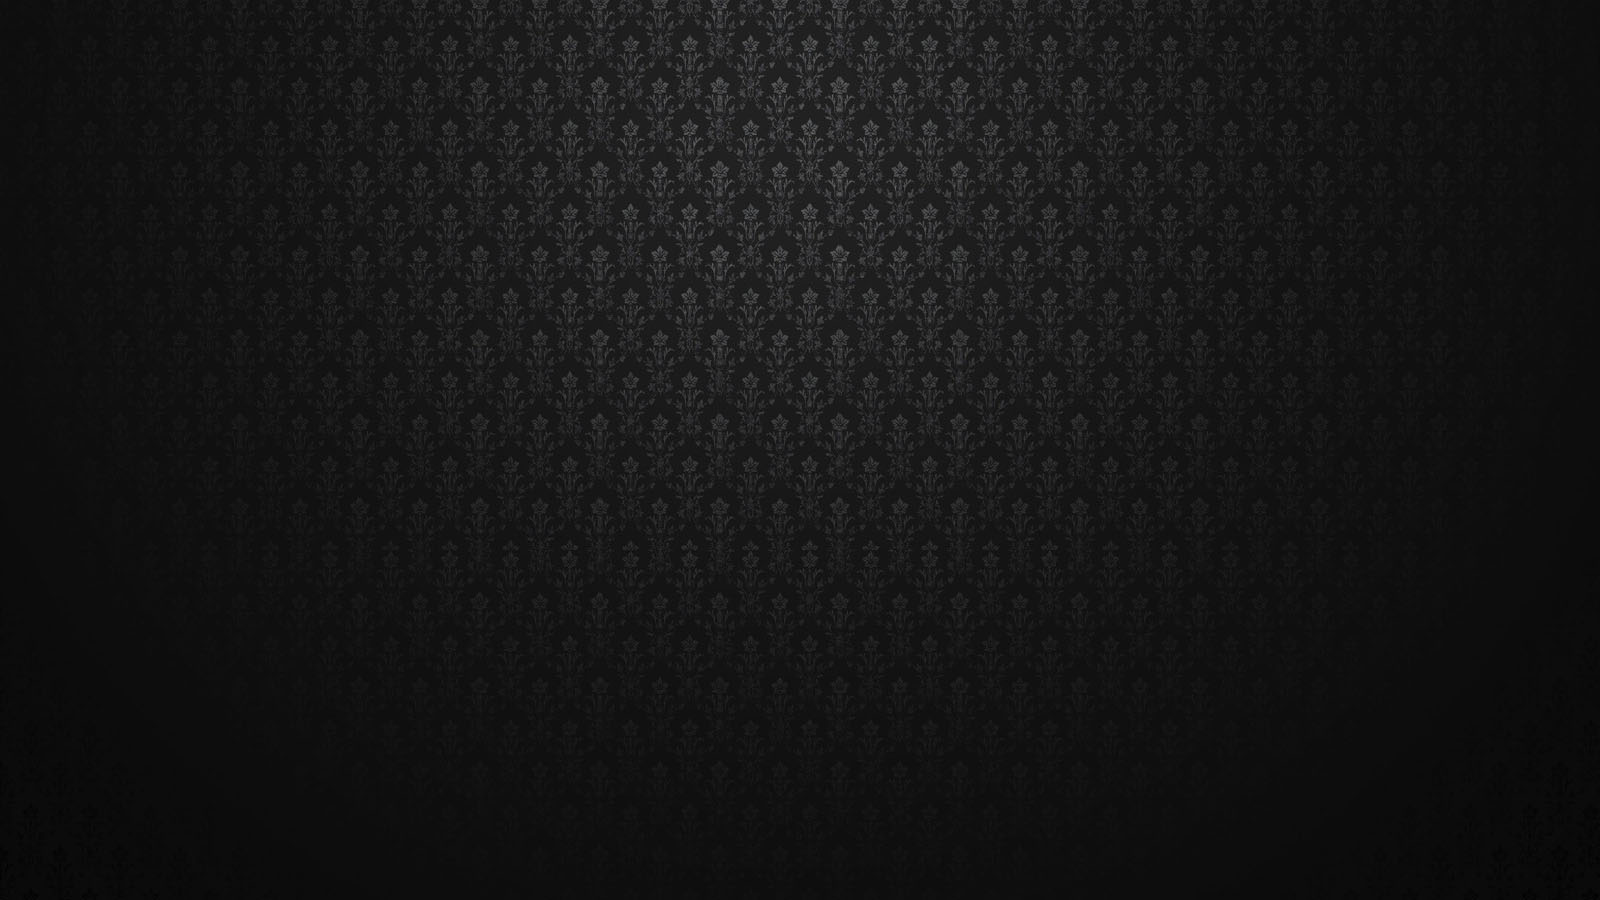 30 beautiful black wallpapers for your desktop mobile and tablet - hd